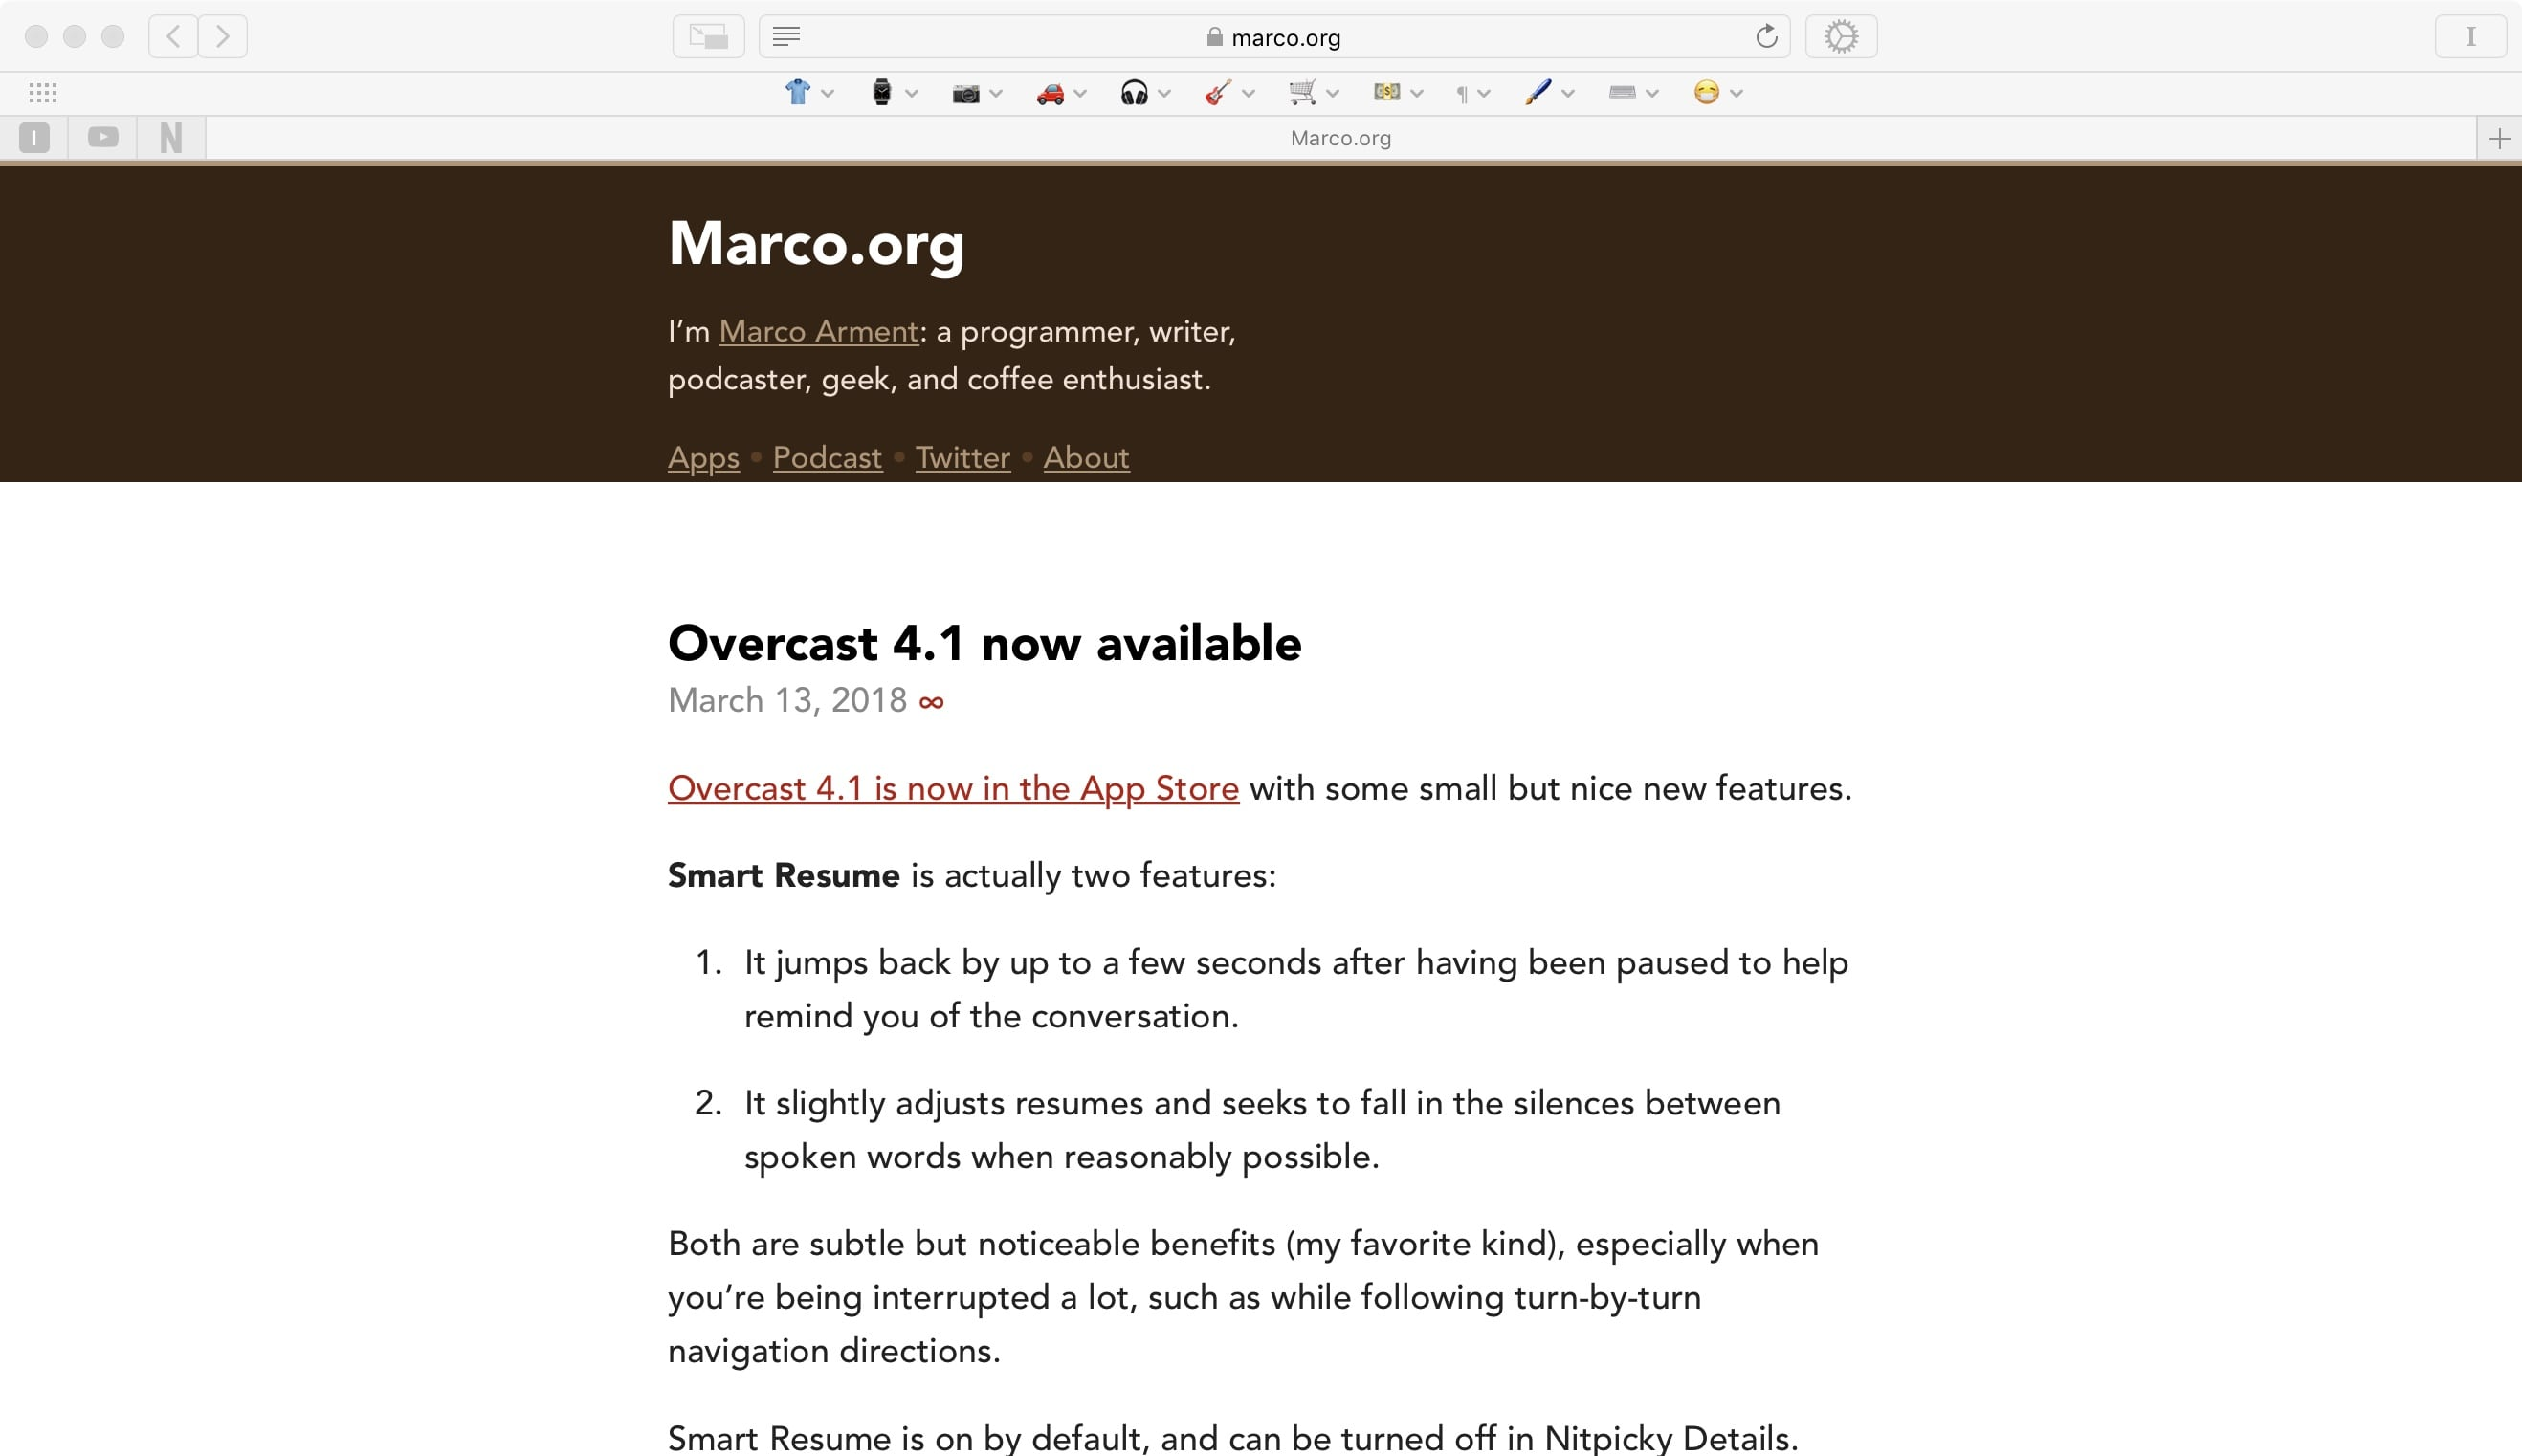 Without specific Marco.org blacklisting. See how the title text isn't vertically centered in the brown masthead?